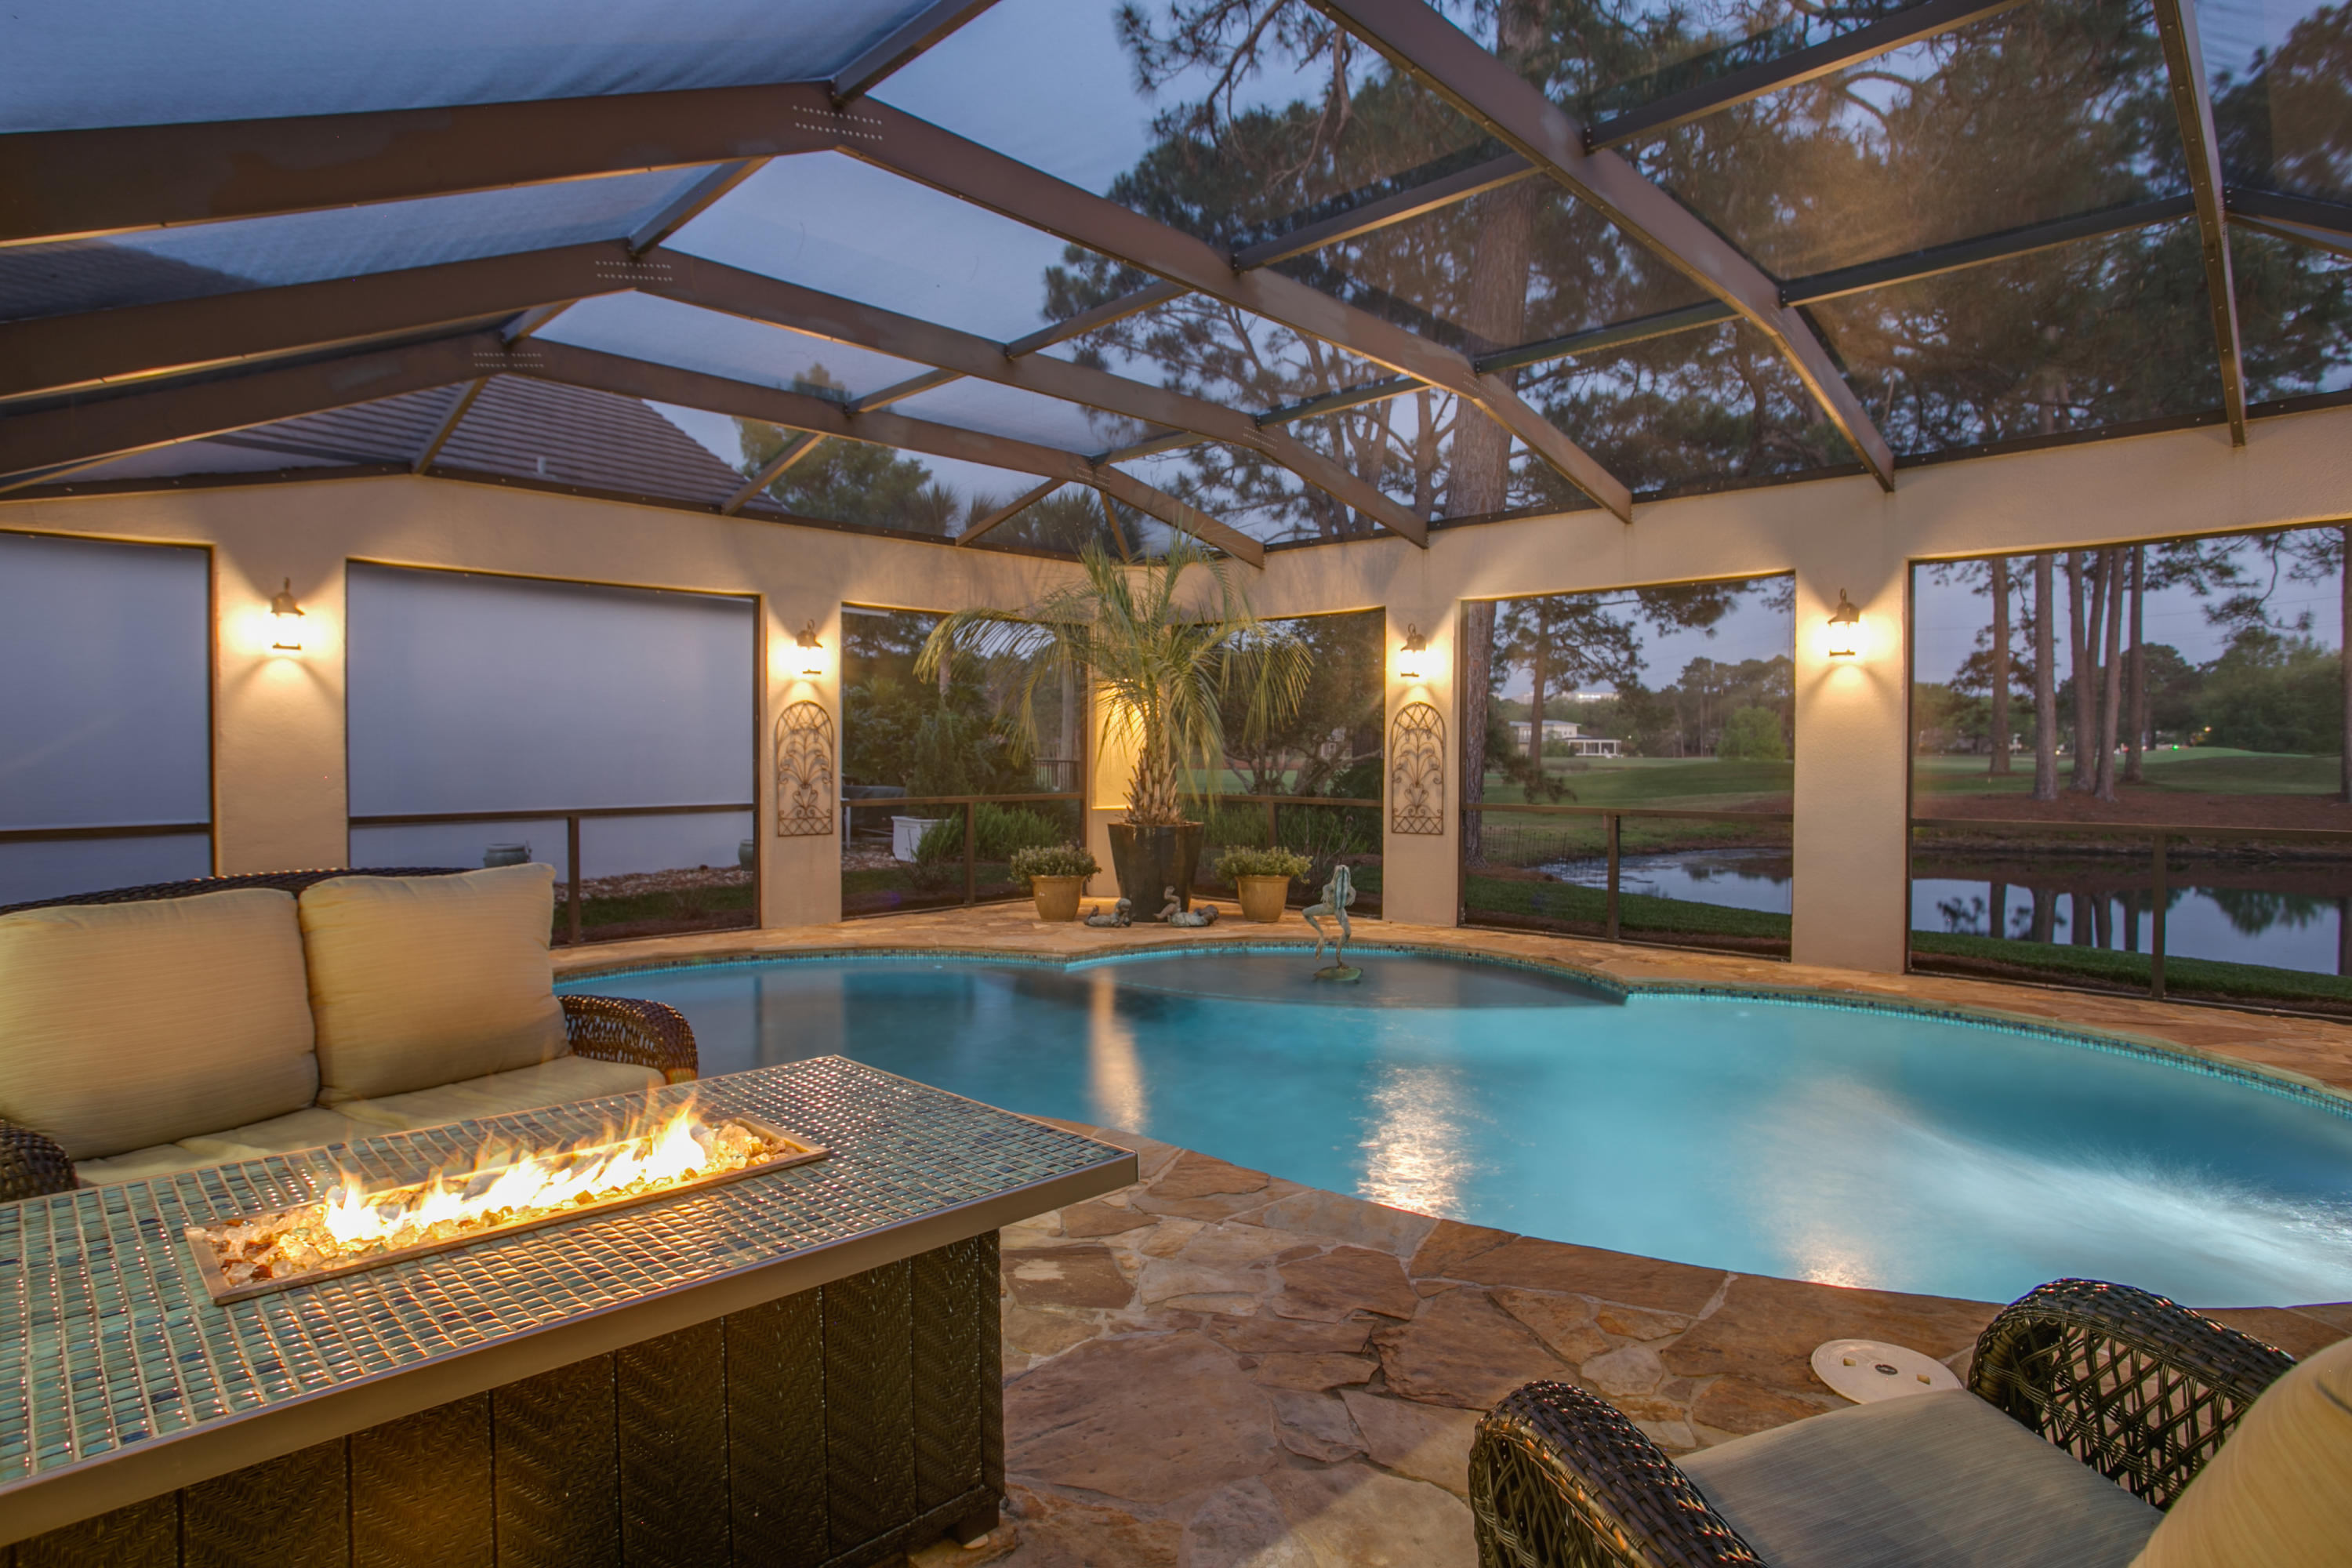 From the moment you walk in, you will be drawn to the views of the pool, lanai, lake and Baytowne Go